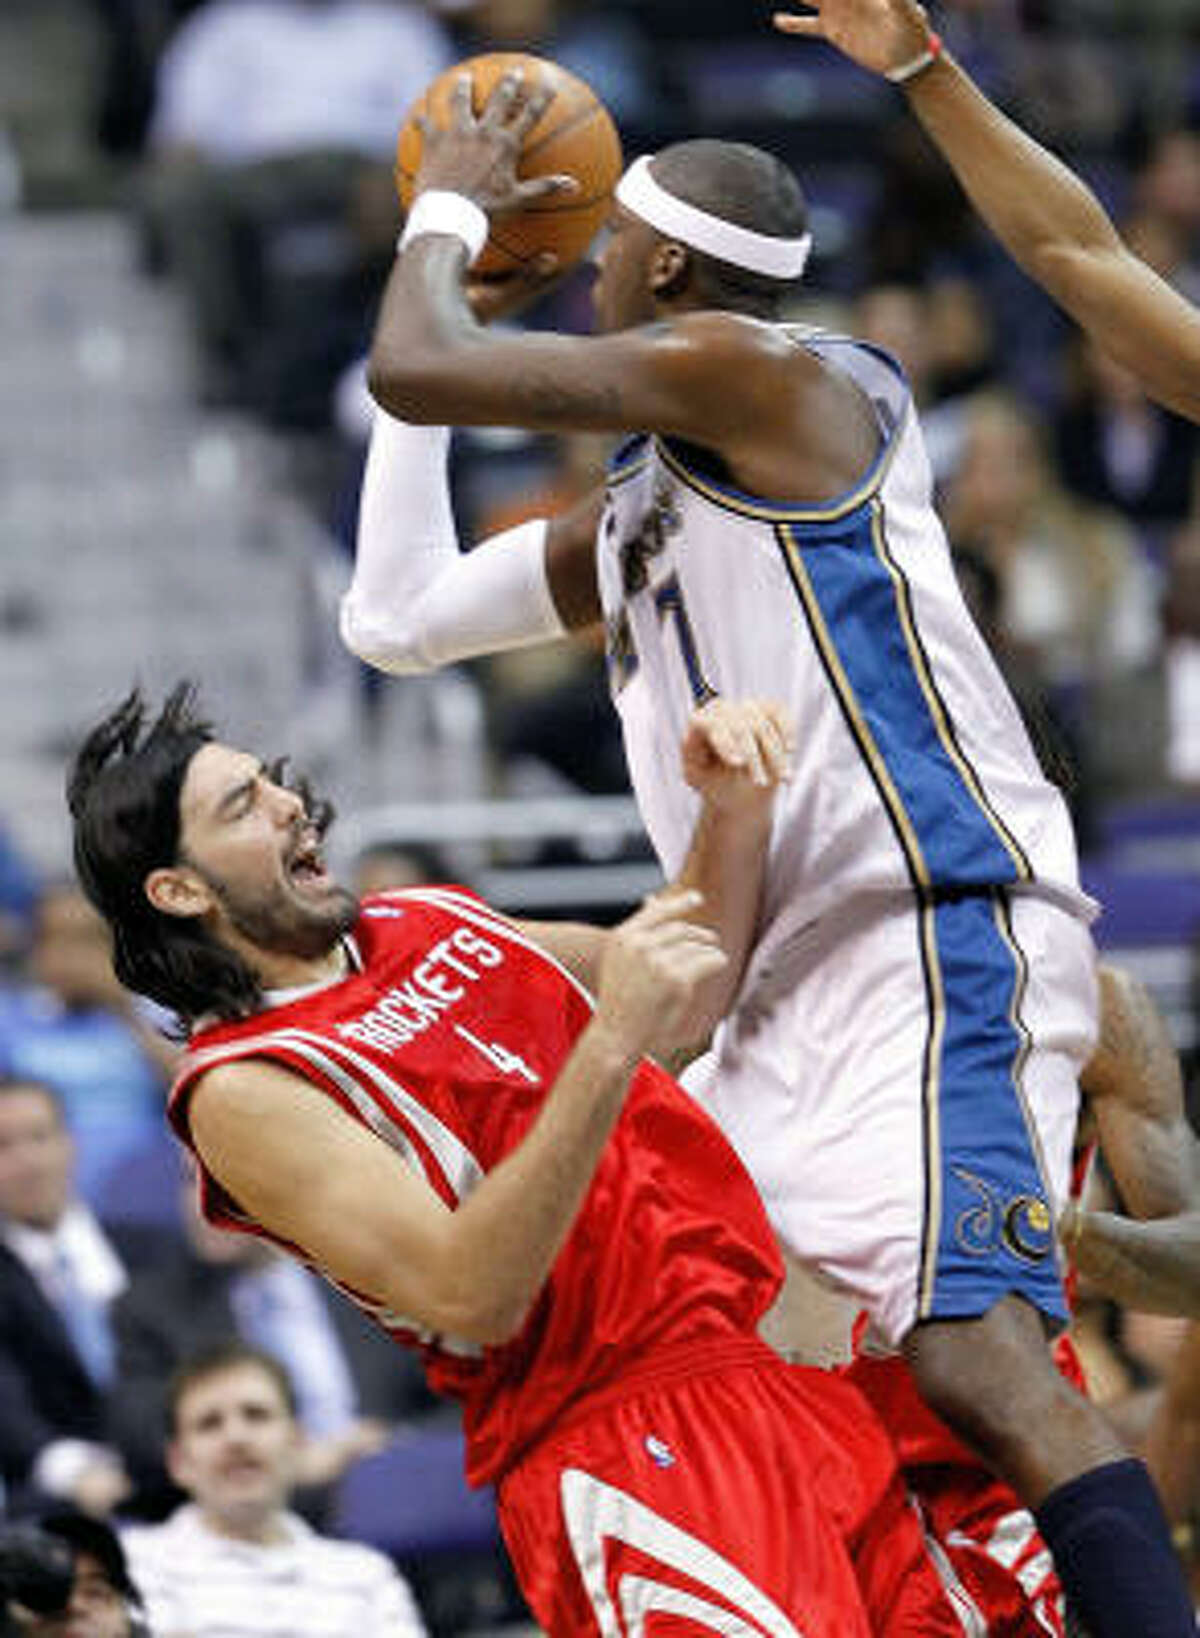 Wizards forward Andray Blatche charges into Rockets forward Luis Scola for a foul.